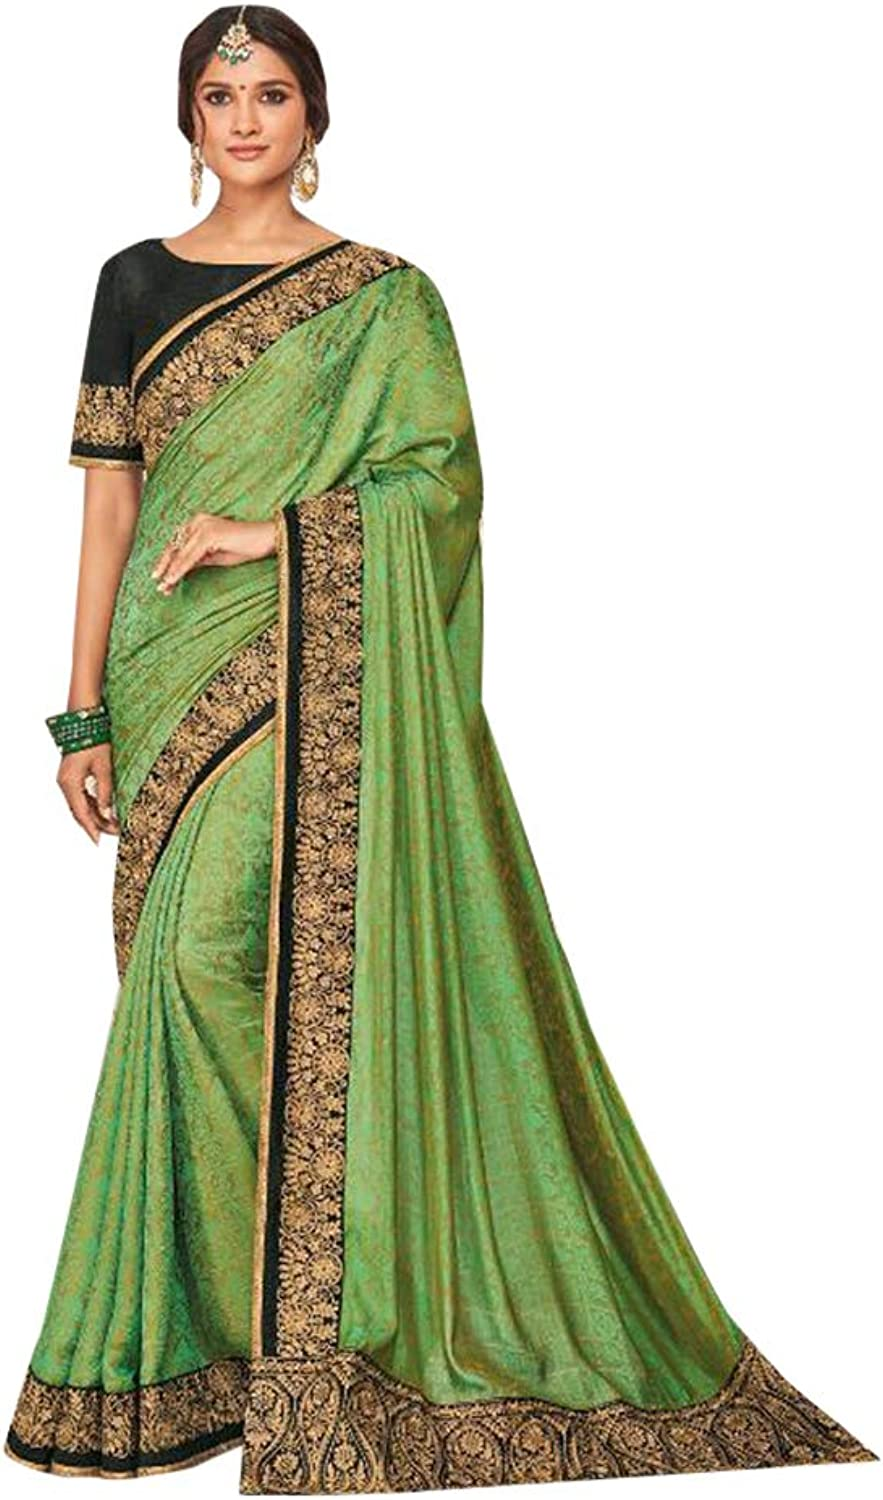 Green Royal Saree Blouse Light Weight Party Wear Sari 7496